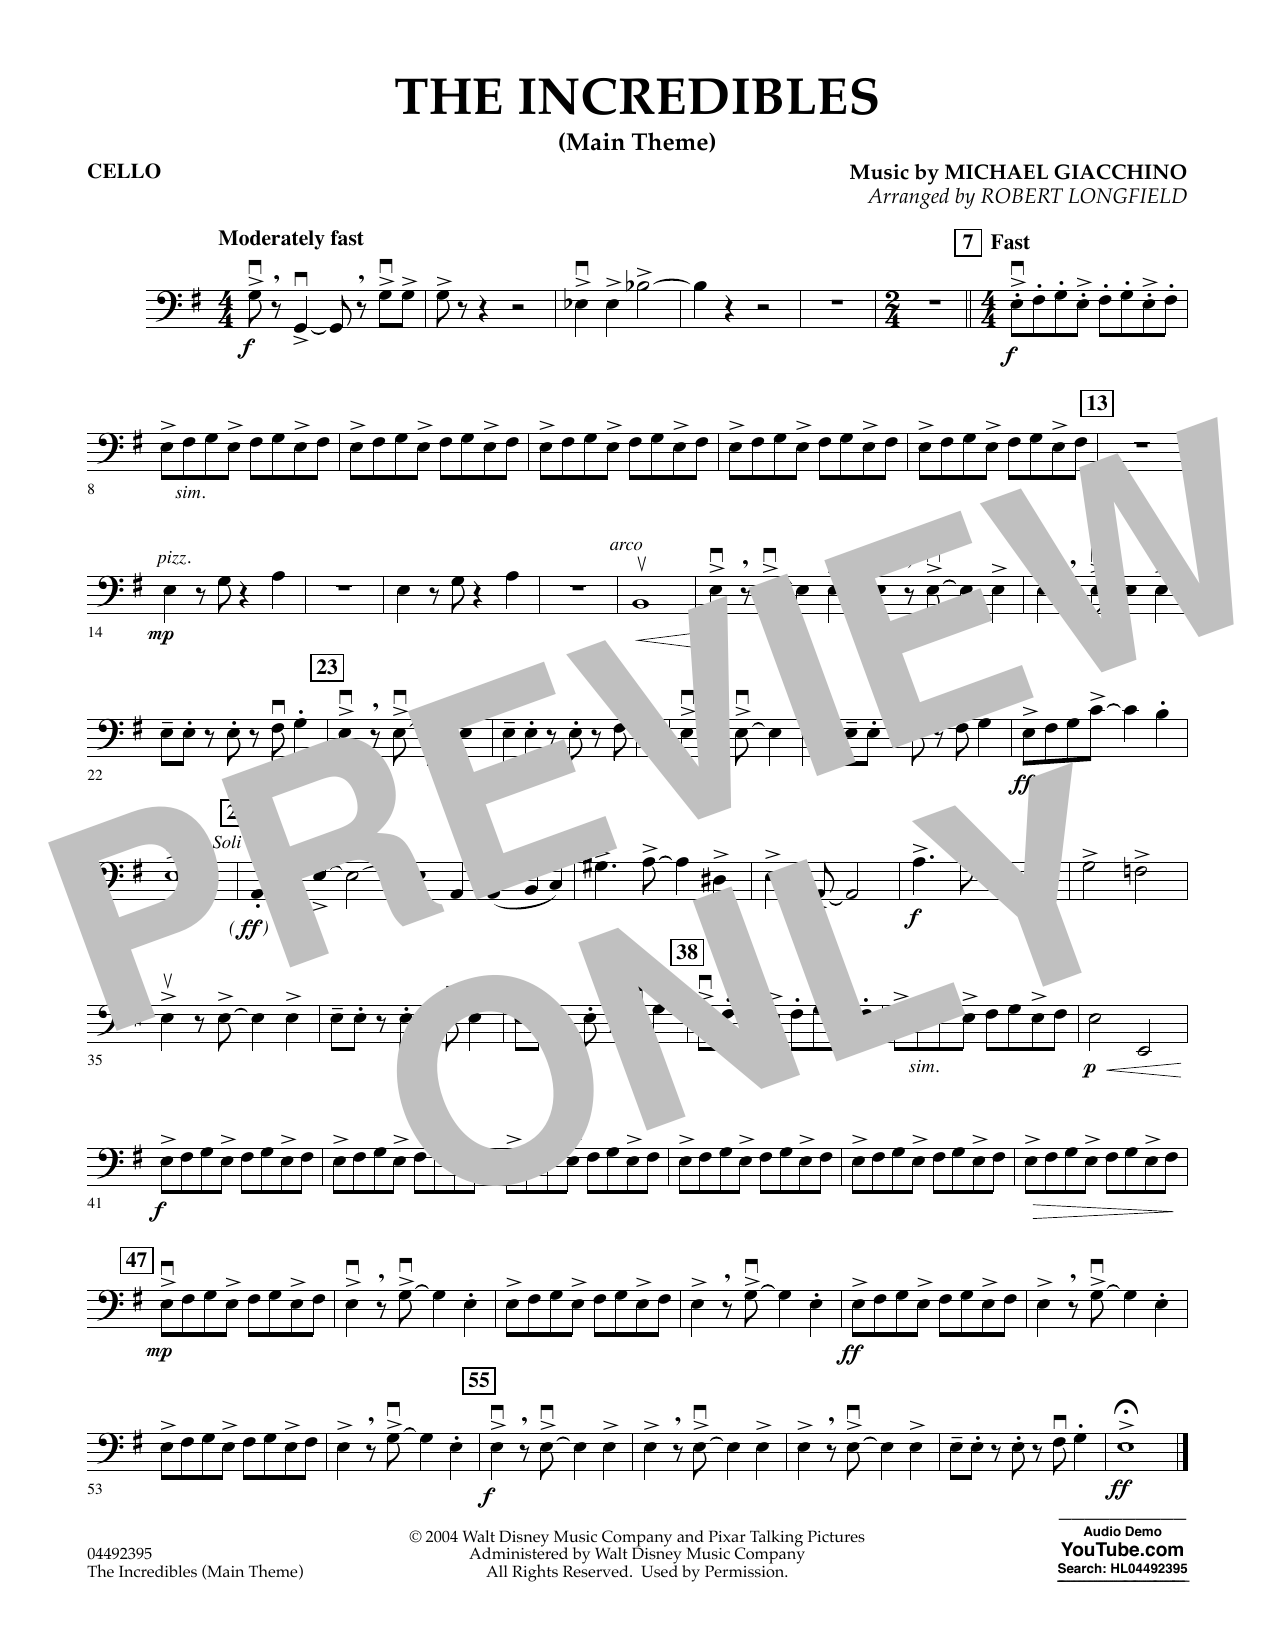 The Incredibles (Main Theme) (arr. Robert Longfield) - Cello (Orchestra)